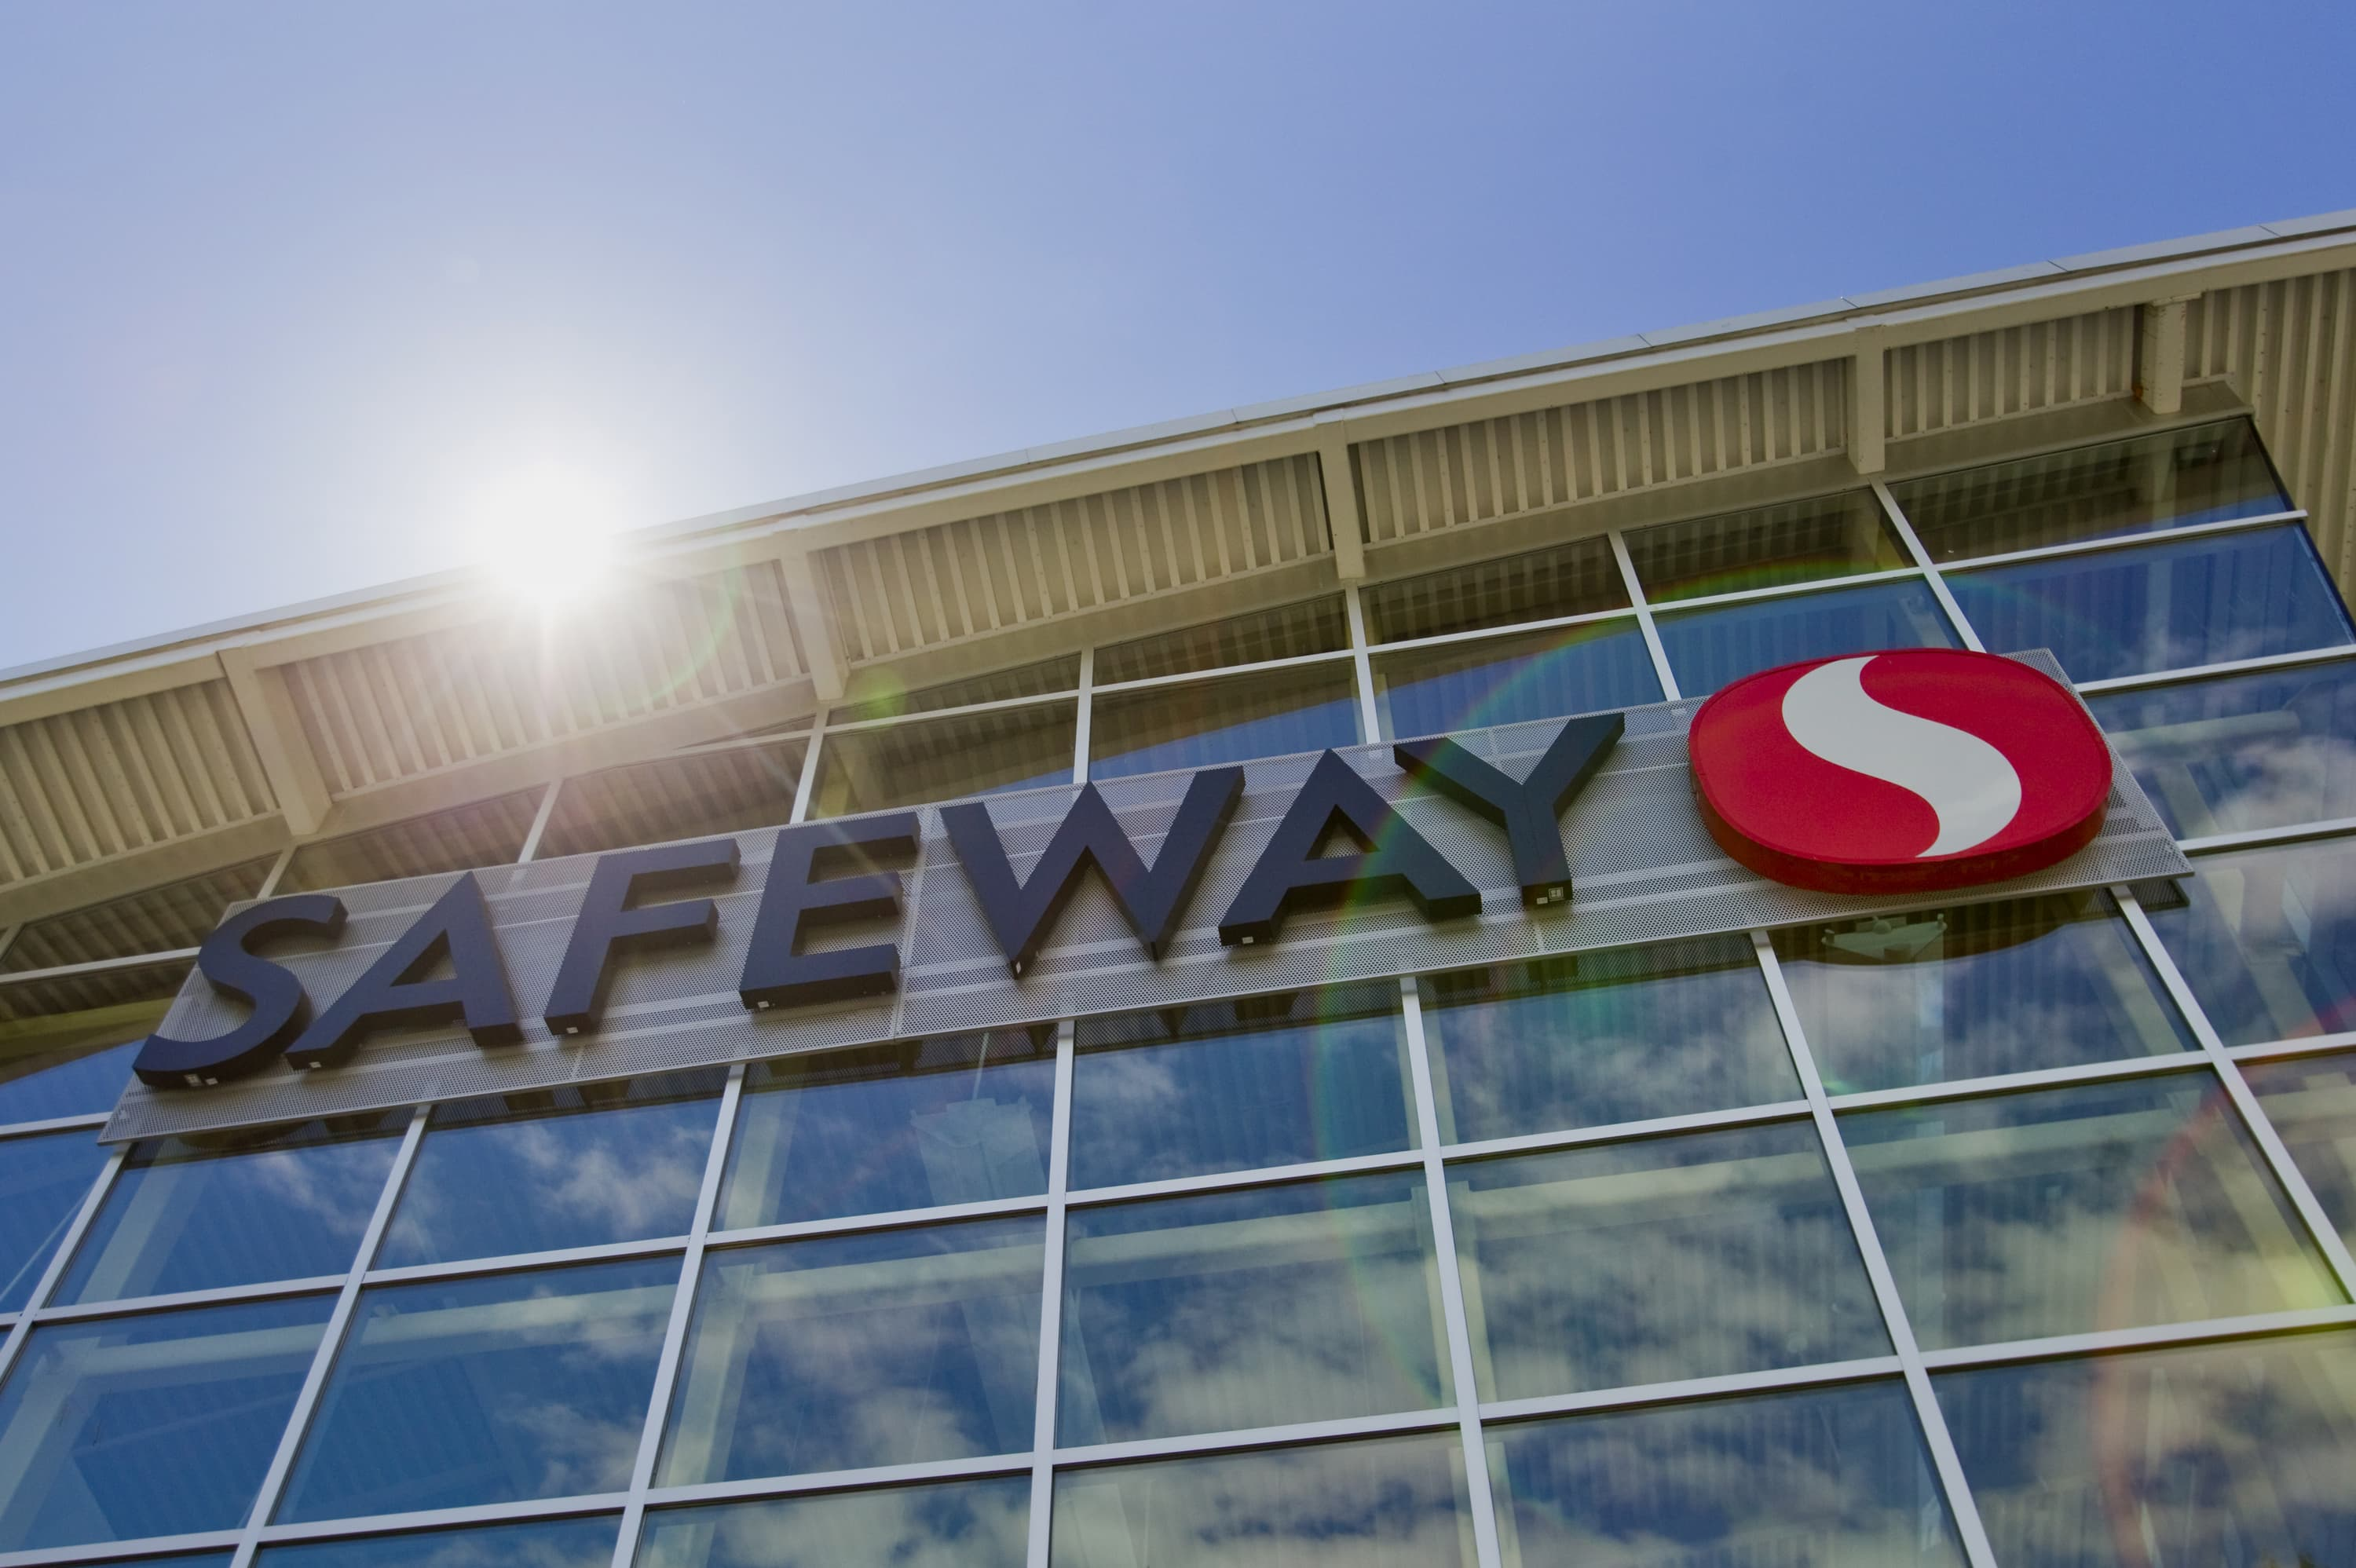 Cerberus Others Explore Deal For Safeway Sources